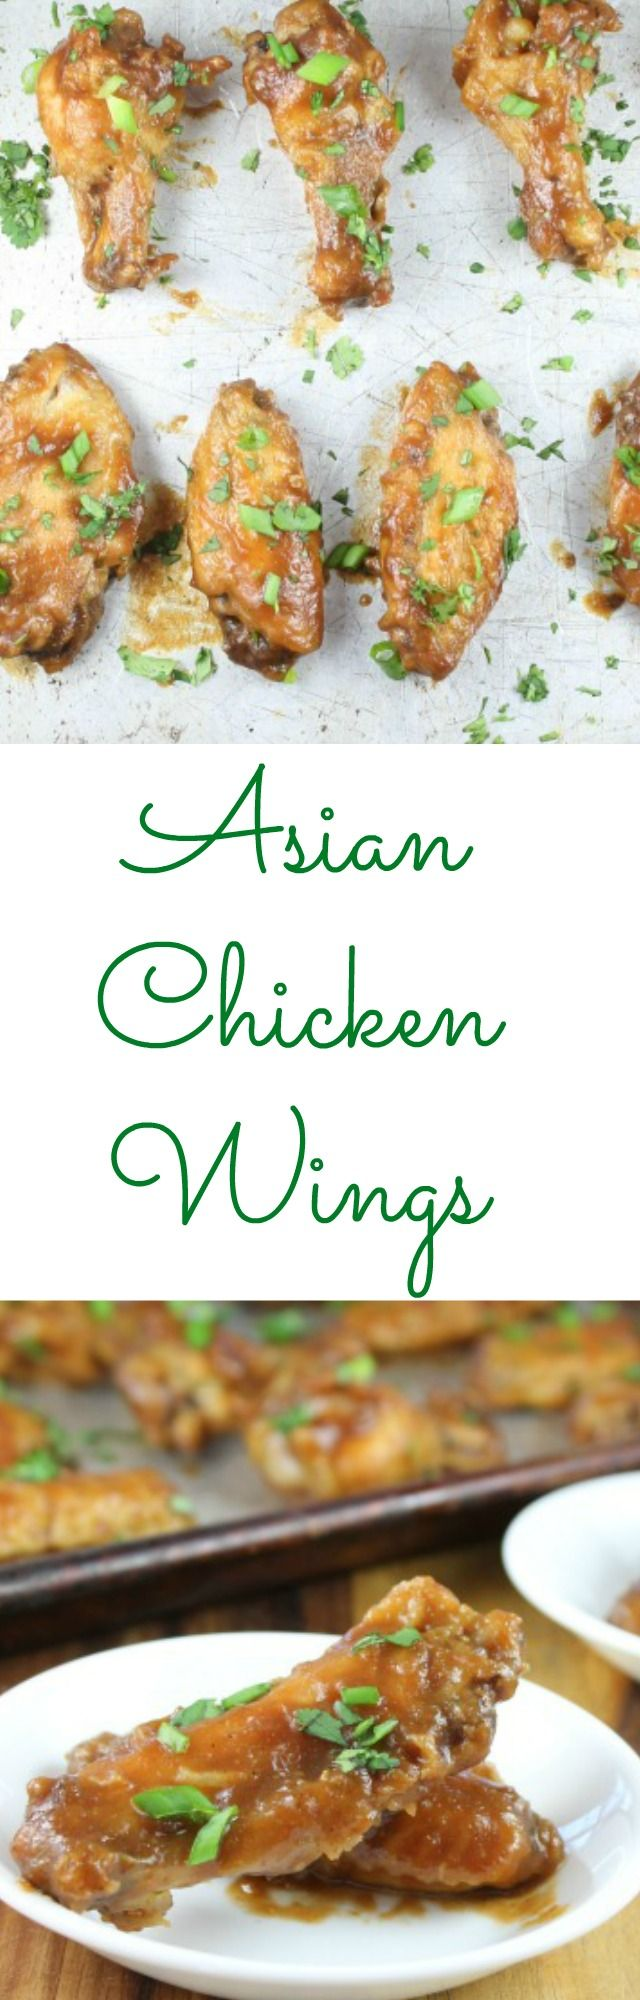 193 best Wings images on Pinterest | Chicken wings, Cooking food and ...